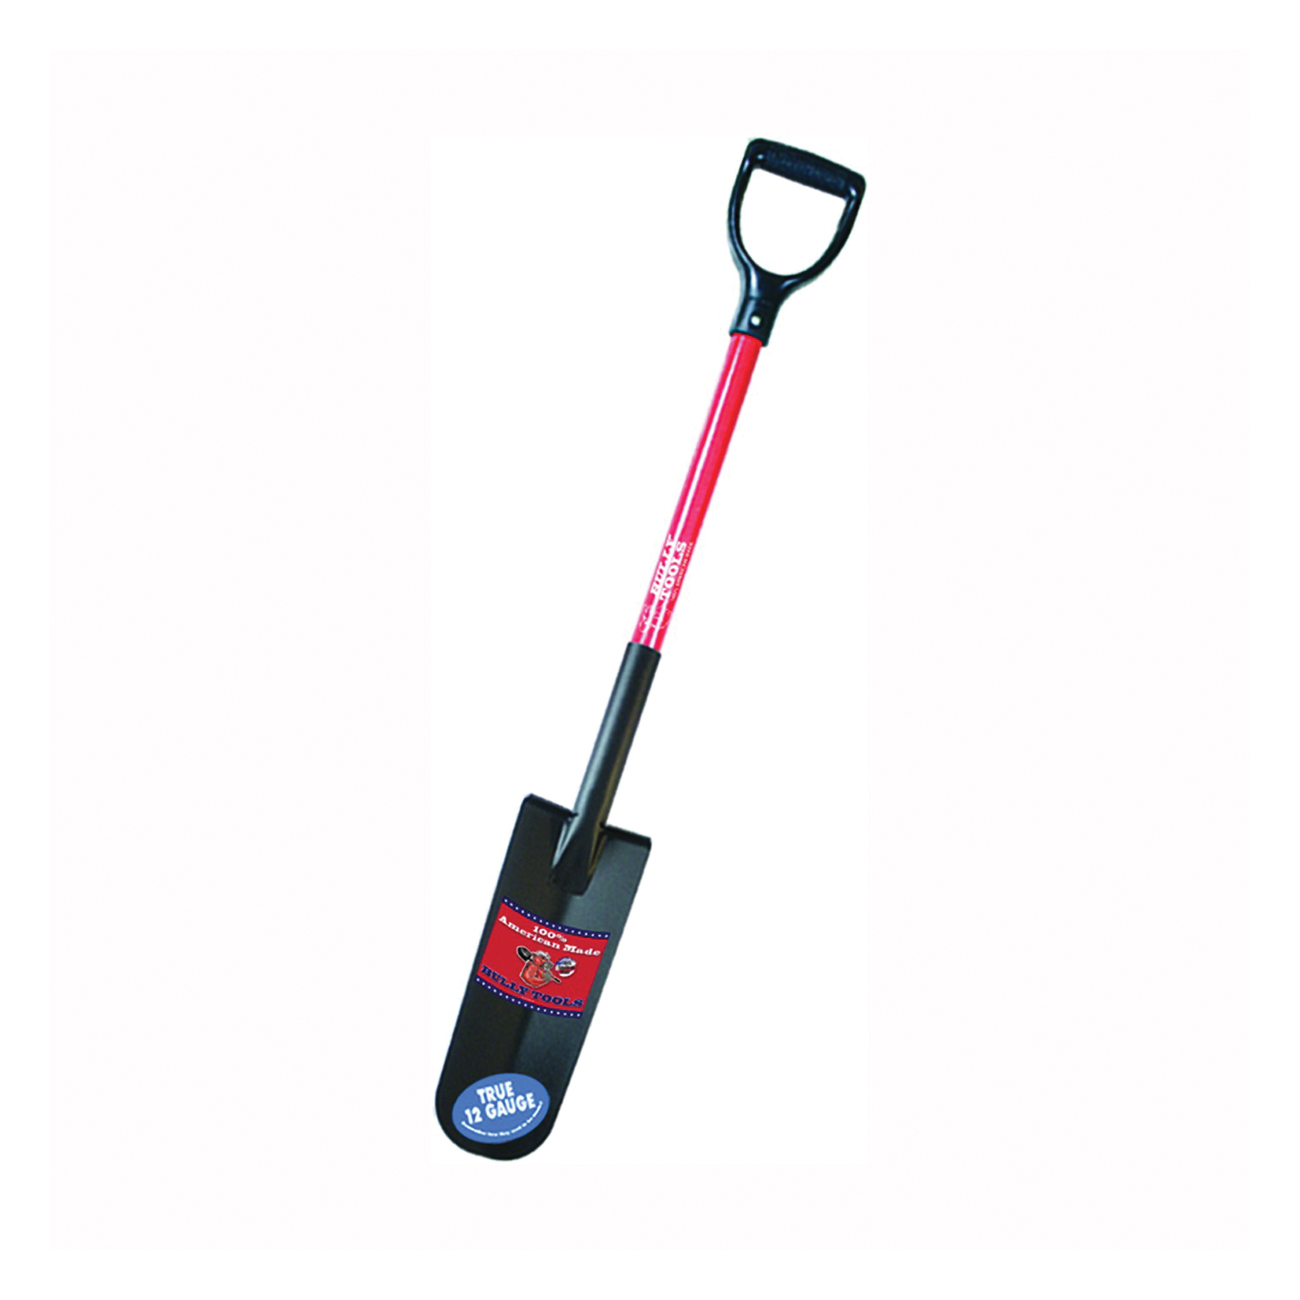 Picture of BULLY Tools 82535 Drain Spade Shovel, 5-1/4 in W Blade, Steel Blade, Fiberglass Handle, D-Shaped Handle